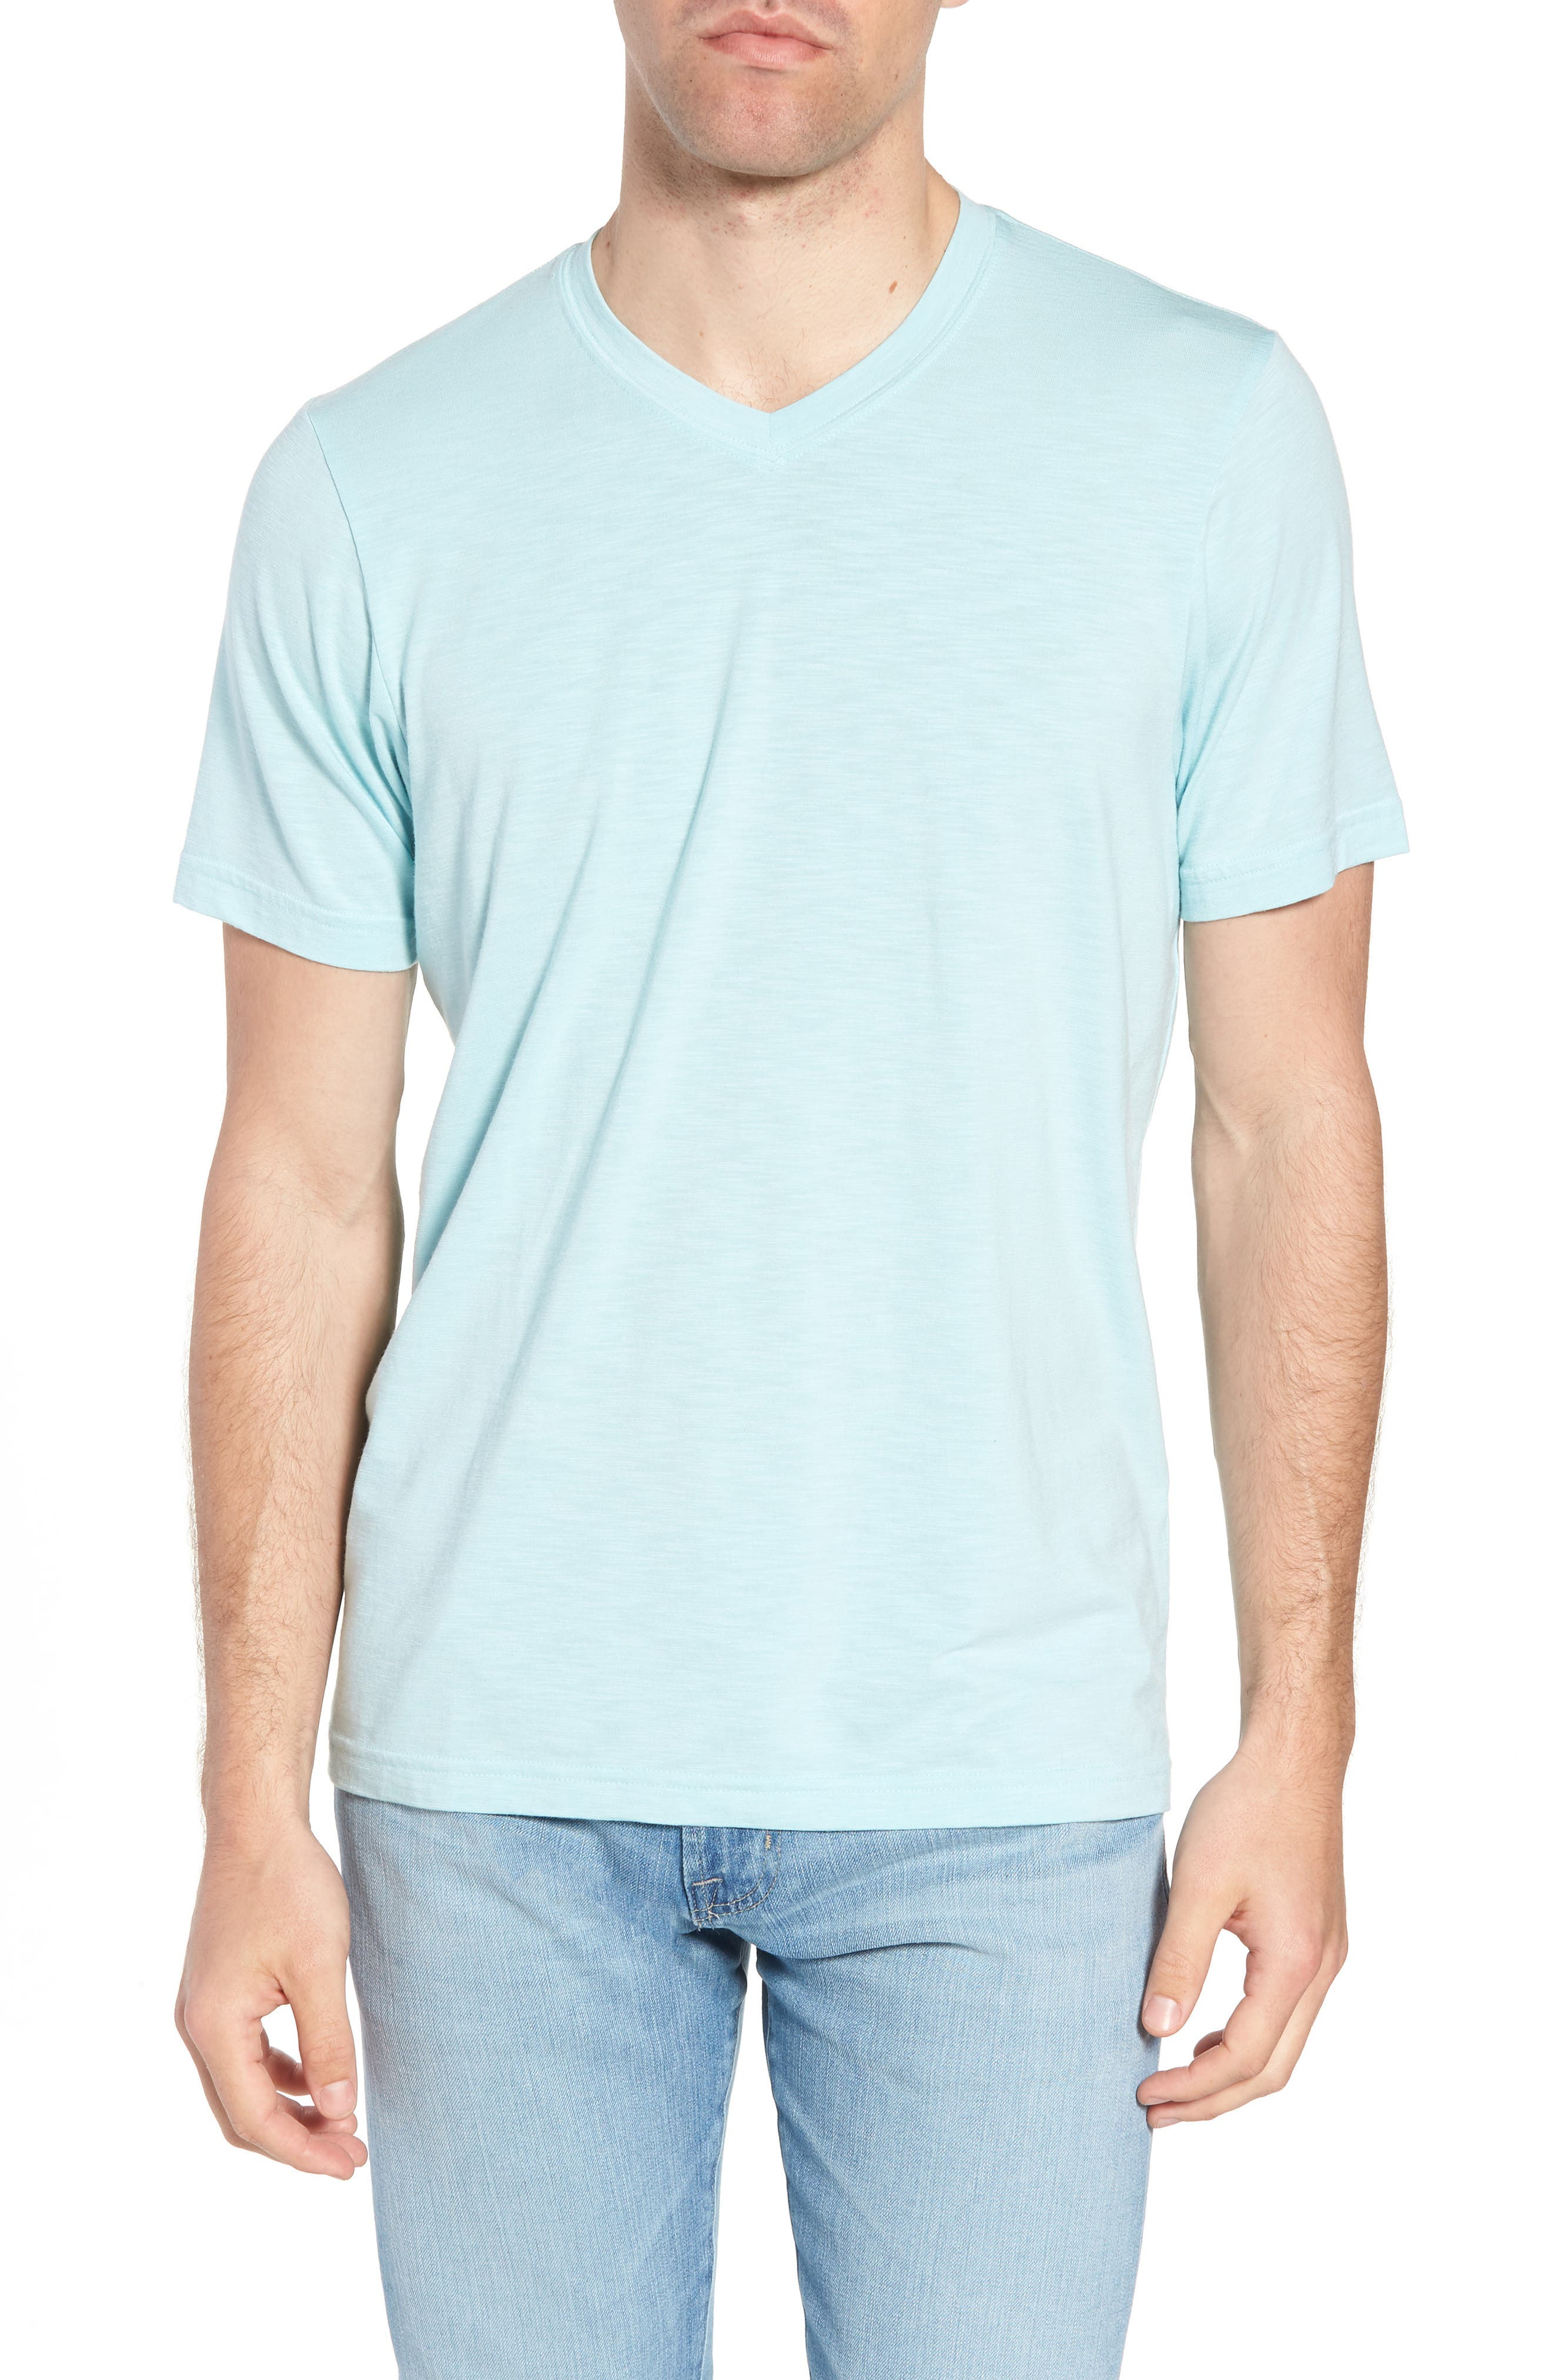 'Trumbull' Trim Fit Slubbed T-Shirt,                         Main,                         color, PORCELAIN BLUE